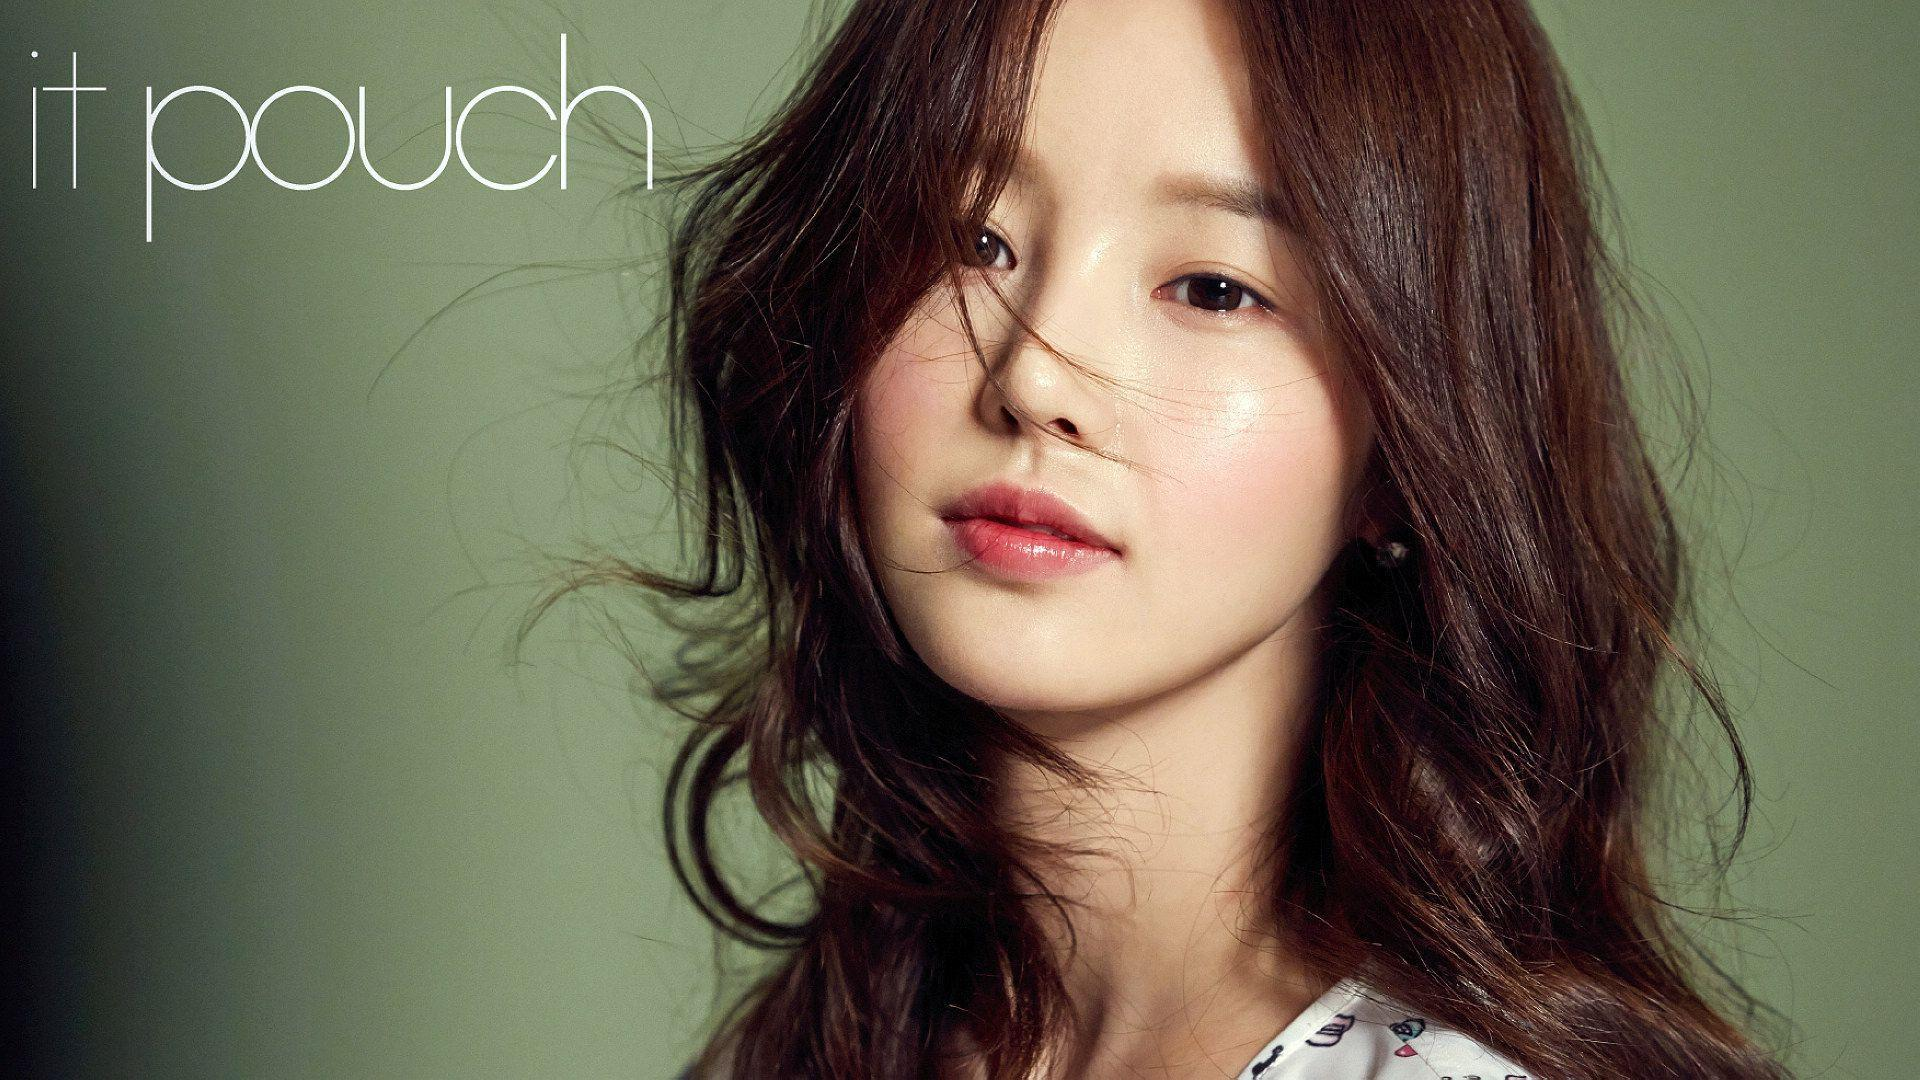 nam gyu ri wallpapers wallpaper cave